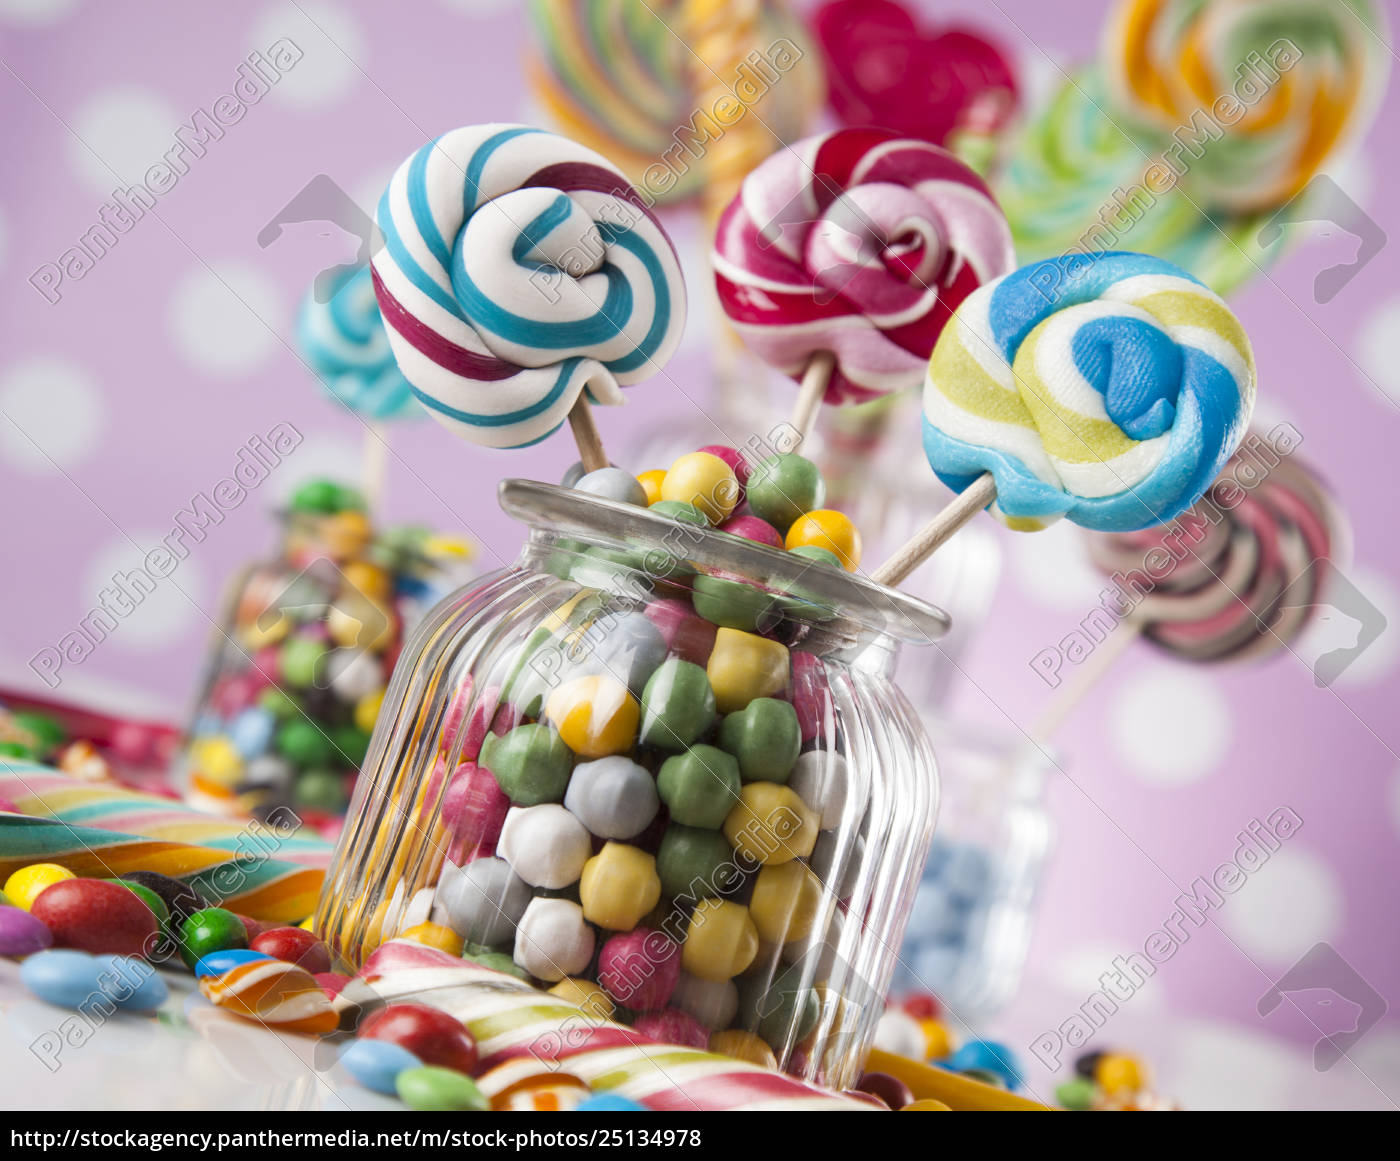 colorful, candies, in, jars, on, table - 25134978